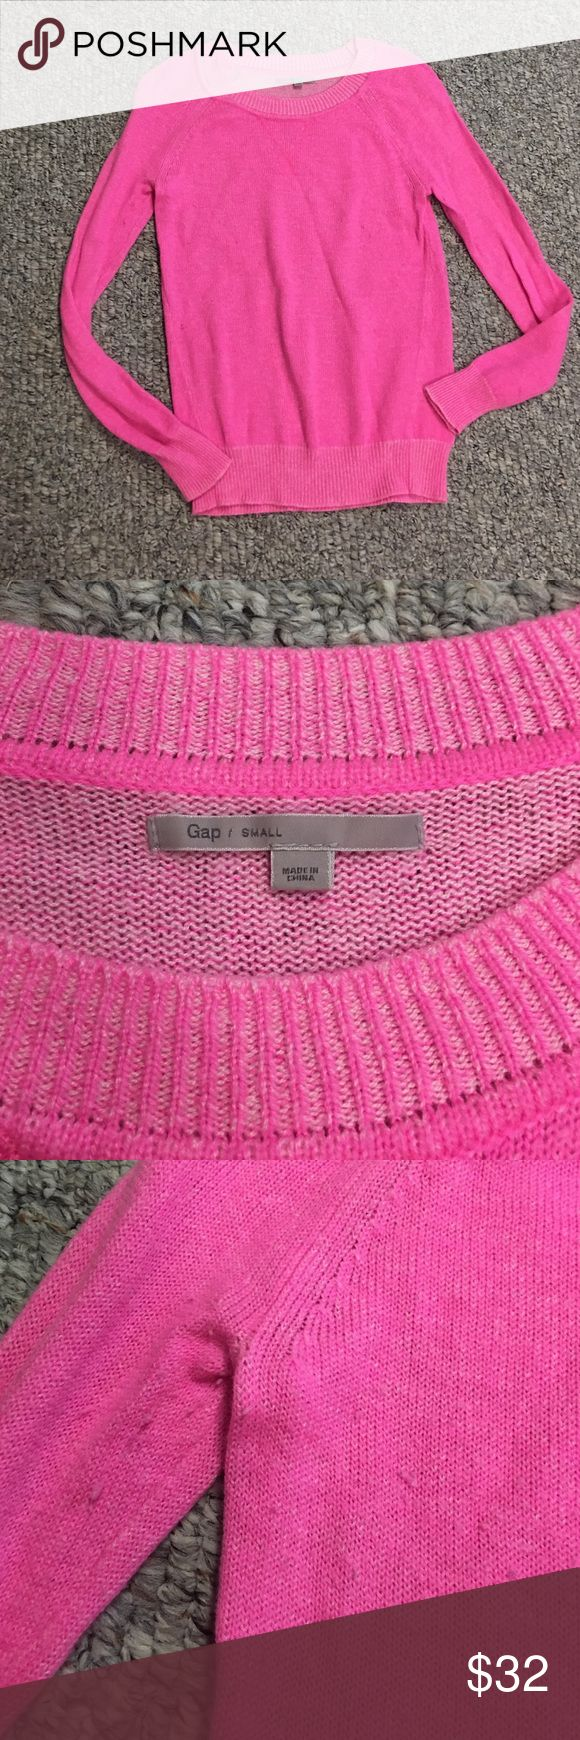 Gap hot pink sweater Gap hot pink sweater. Size small. Some peeling (pictured above) but could easily be shaved off. Gently used. Clean smoke free home. 55nylon, 30wool, 15acrylic. Hand wash. Adorable color Gap Sweaters Crew & Scoop Necks